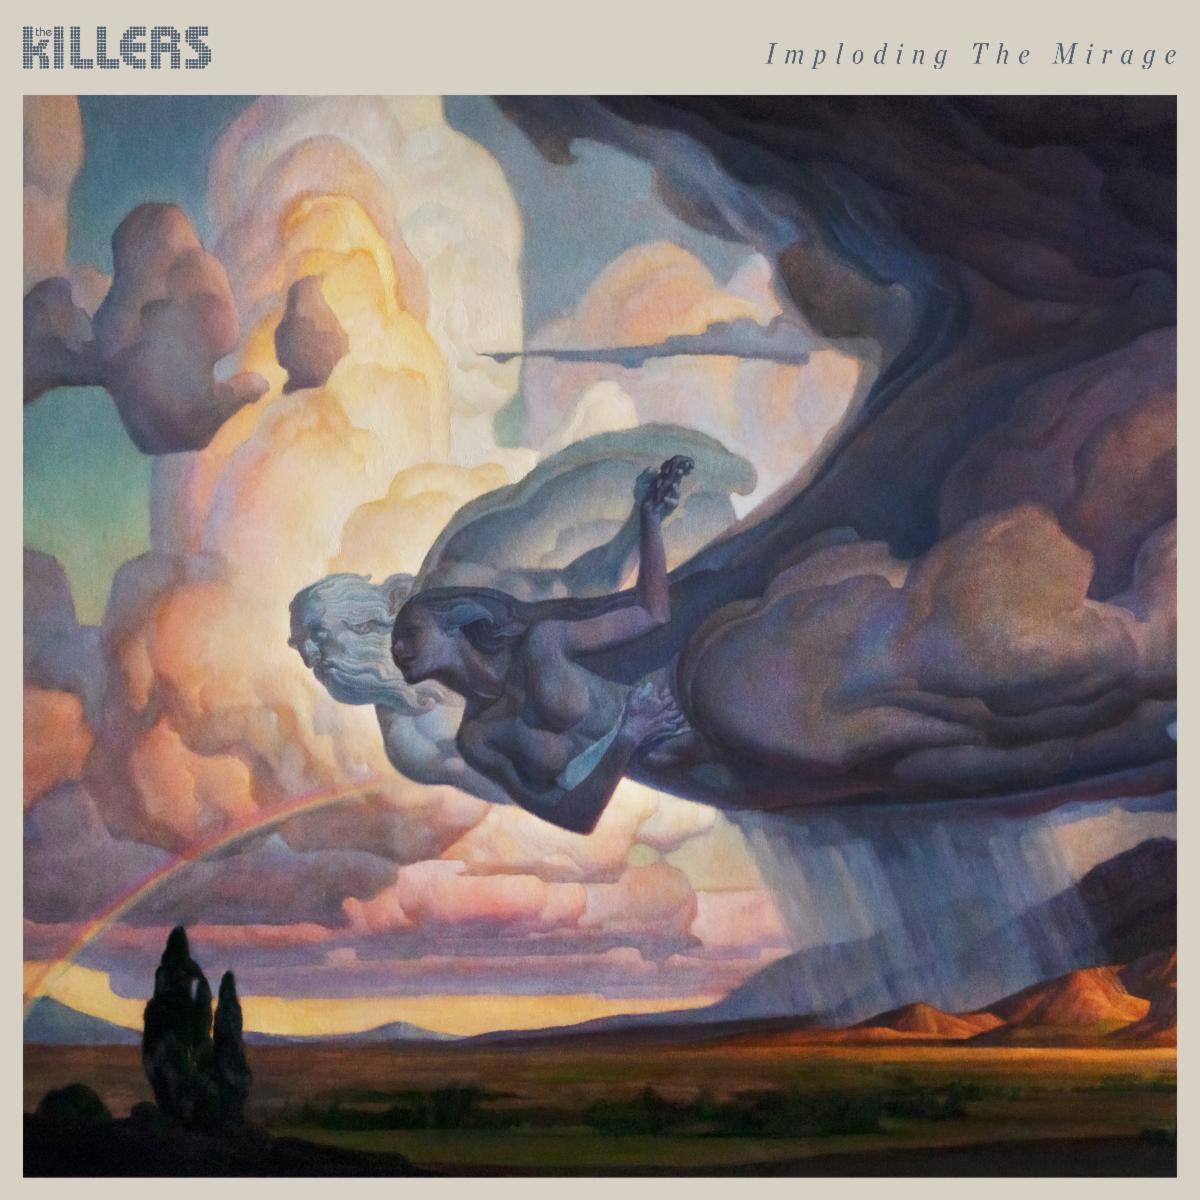 The Killers's Imploding the Mirage album artwork